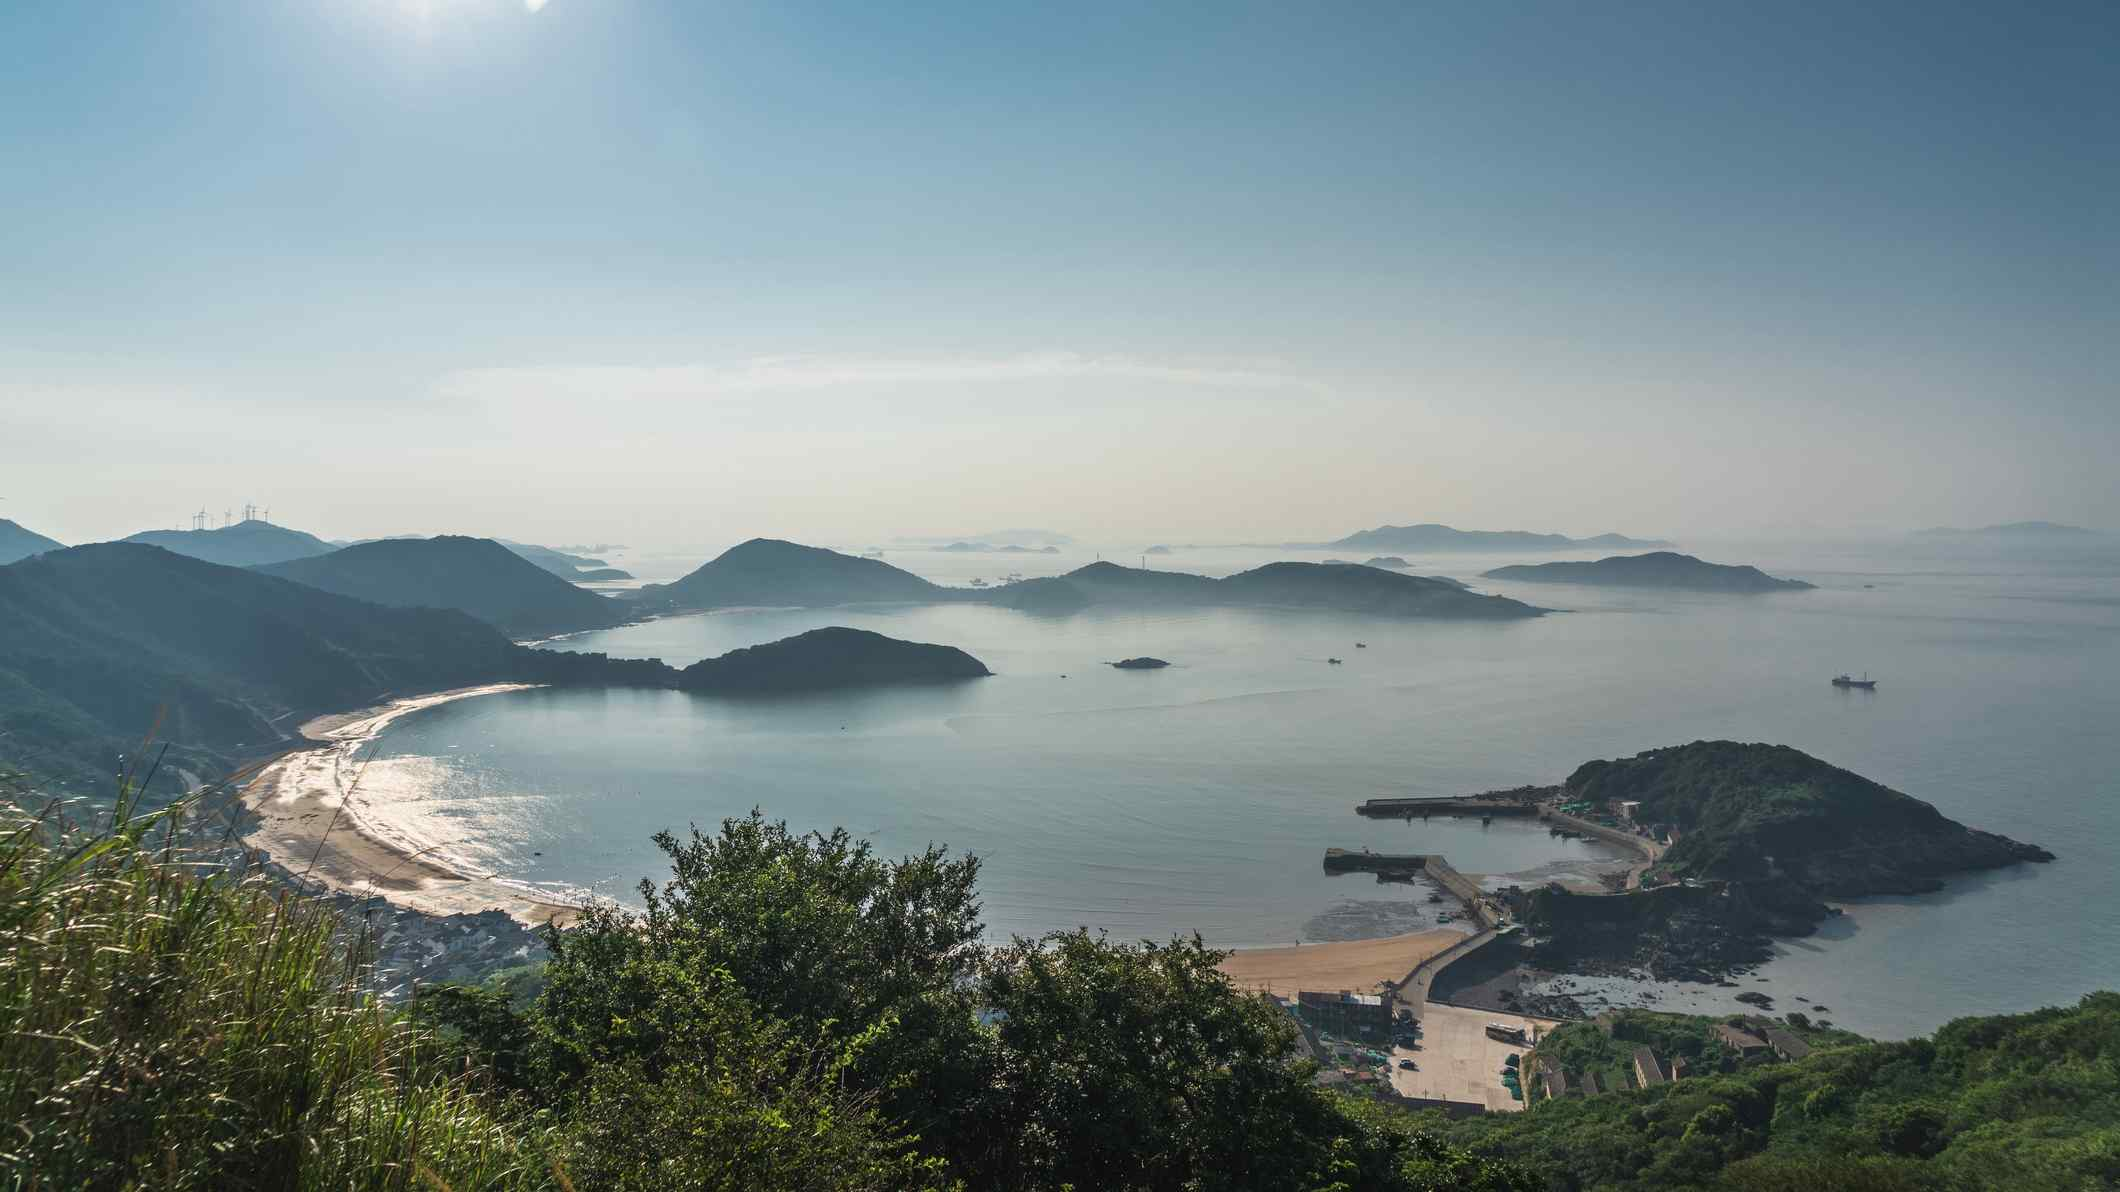 Shengsi Islands seeks to attract more visitors